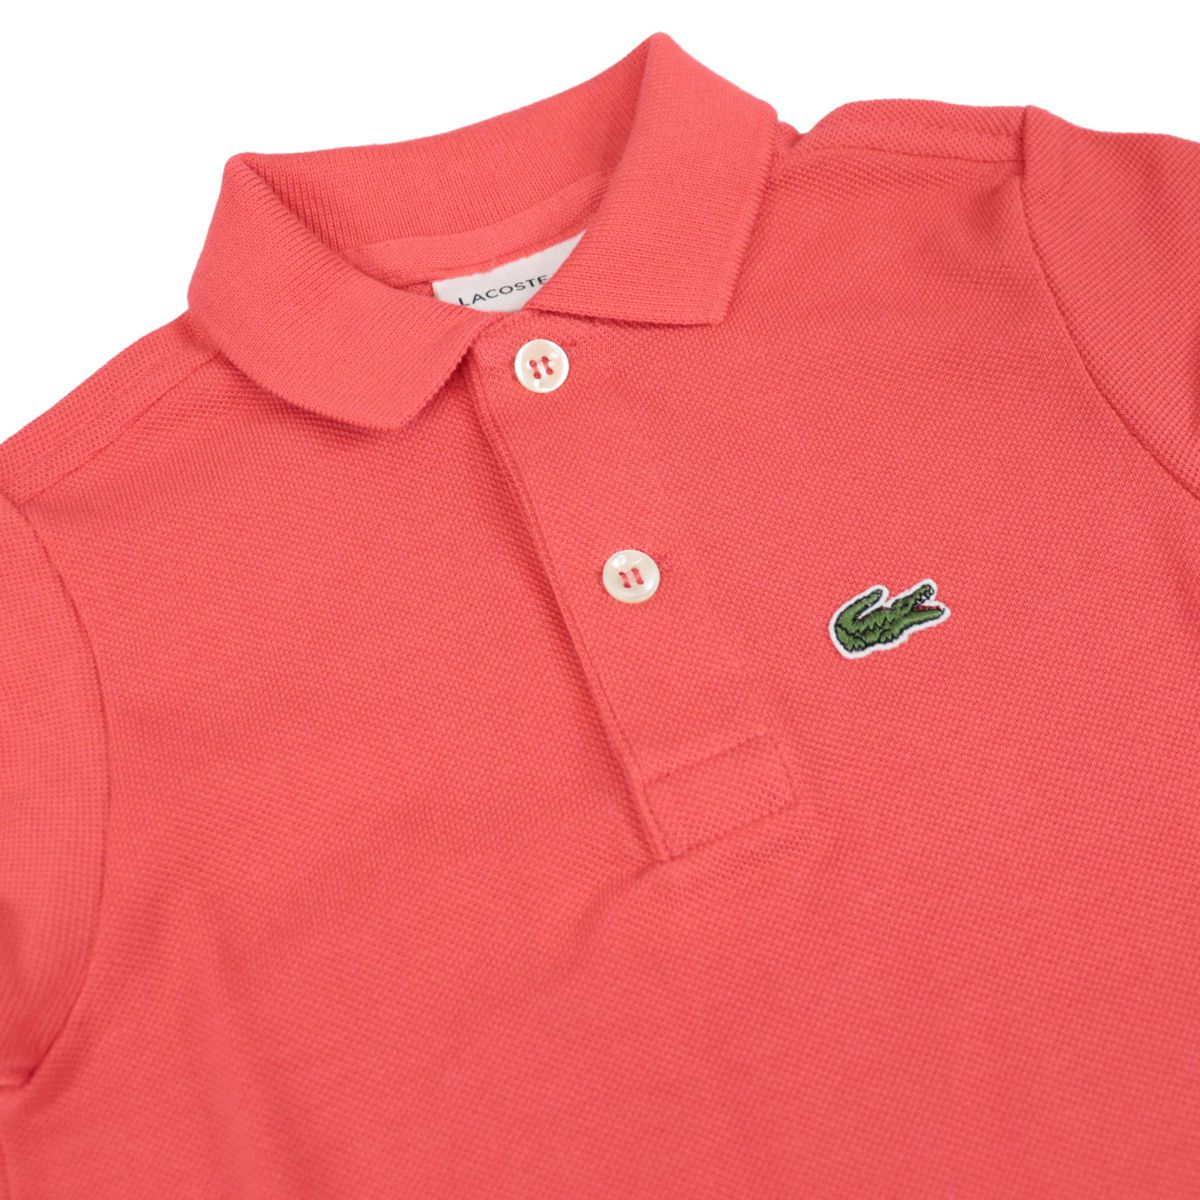 Cotton piqué polo shirt with 2 buttons with logo Orange Lacoste